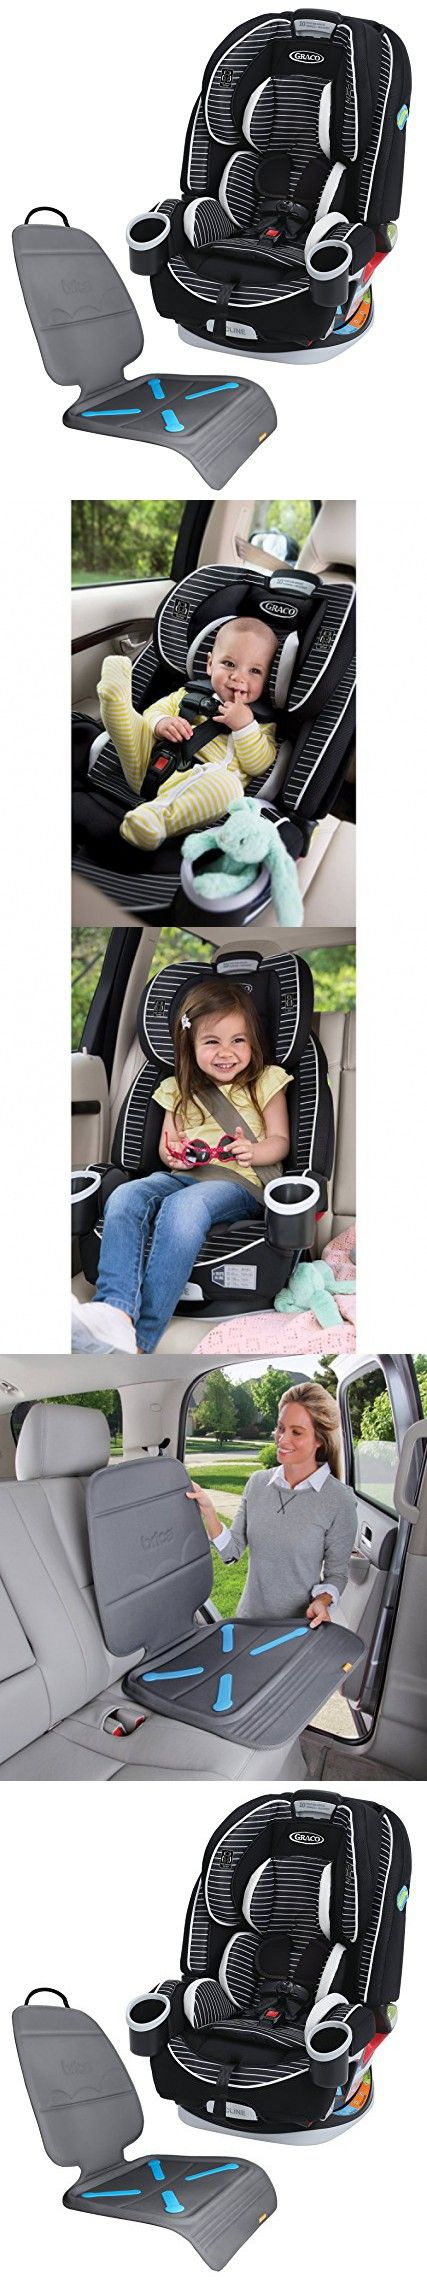 Graco 4Ever All-In-One Convertible Car Seat with Seat Protector, Studio